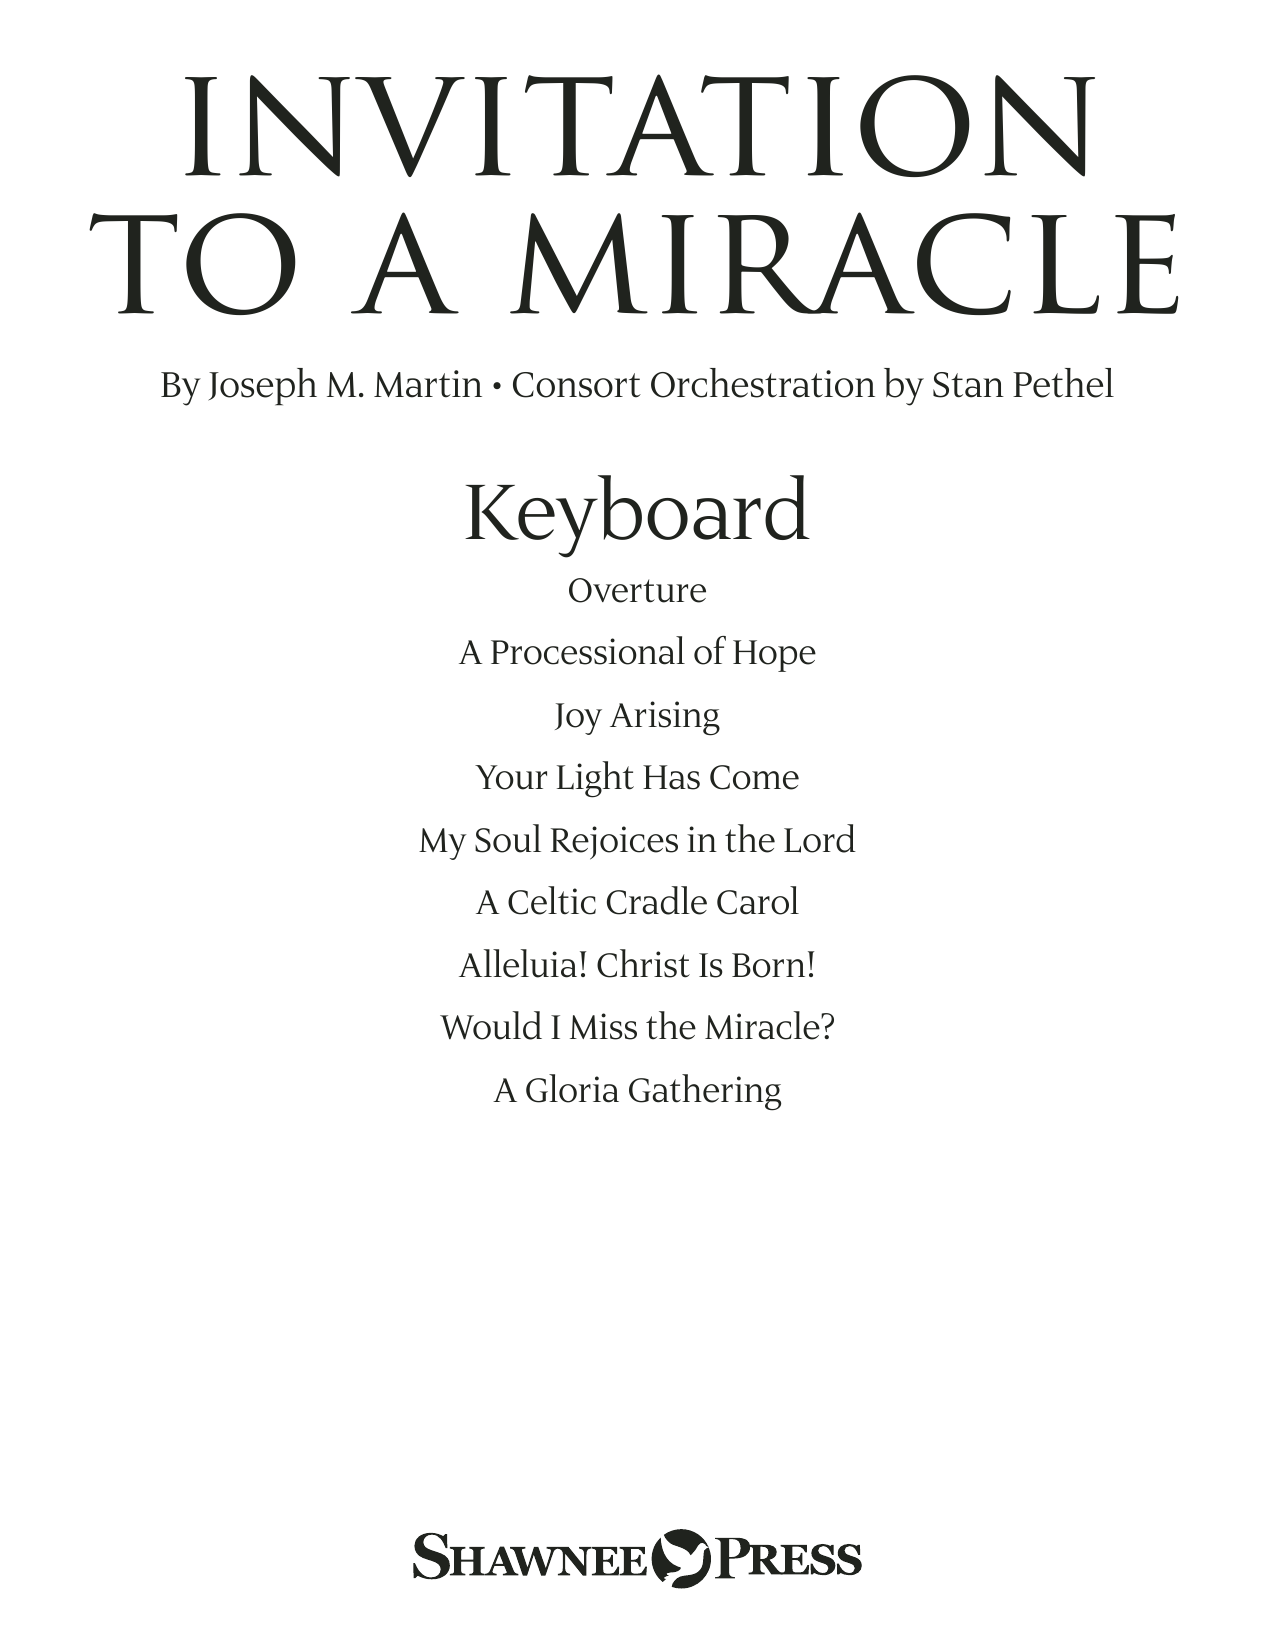 Invitation to a Miracle - Keyboard Sheet Music